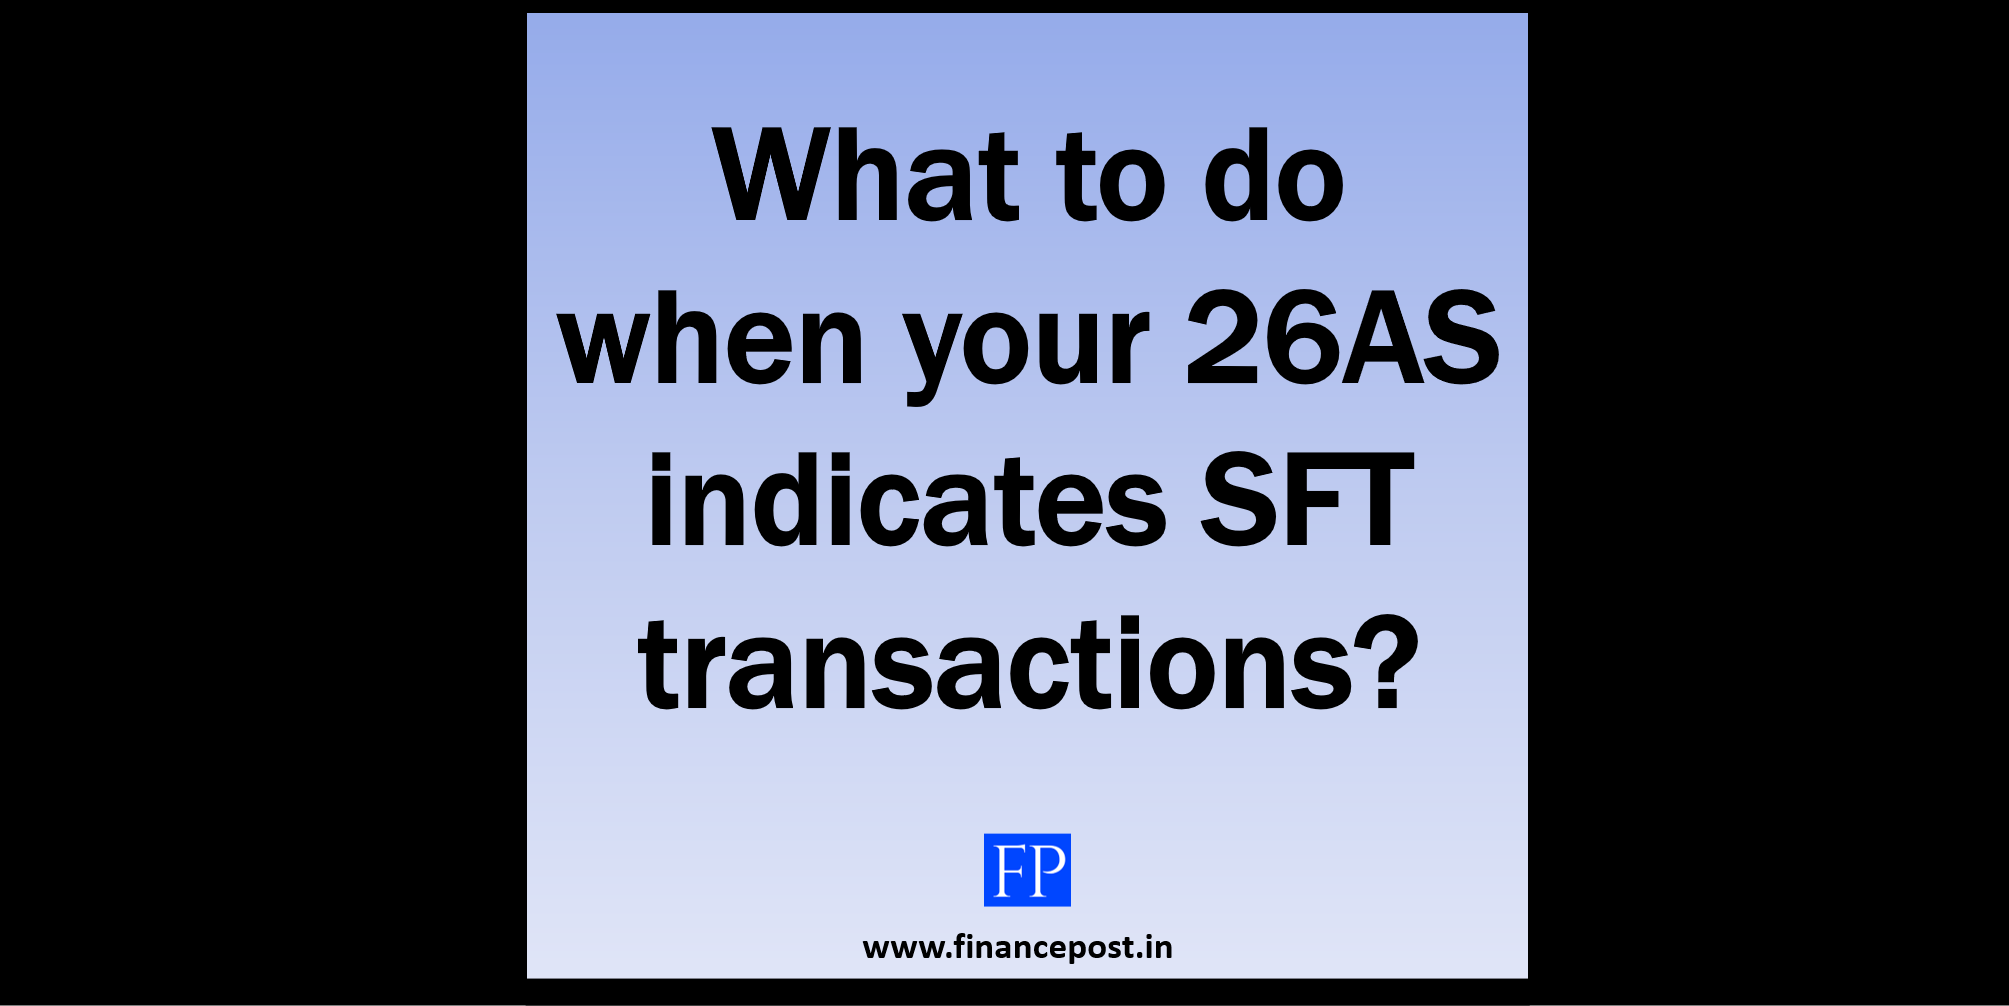 What to do when your 26AS indicates SFT transactions